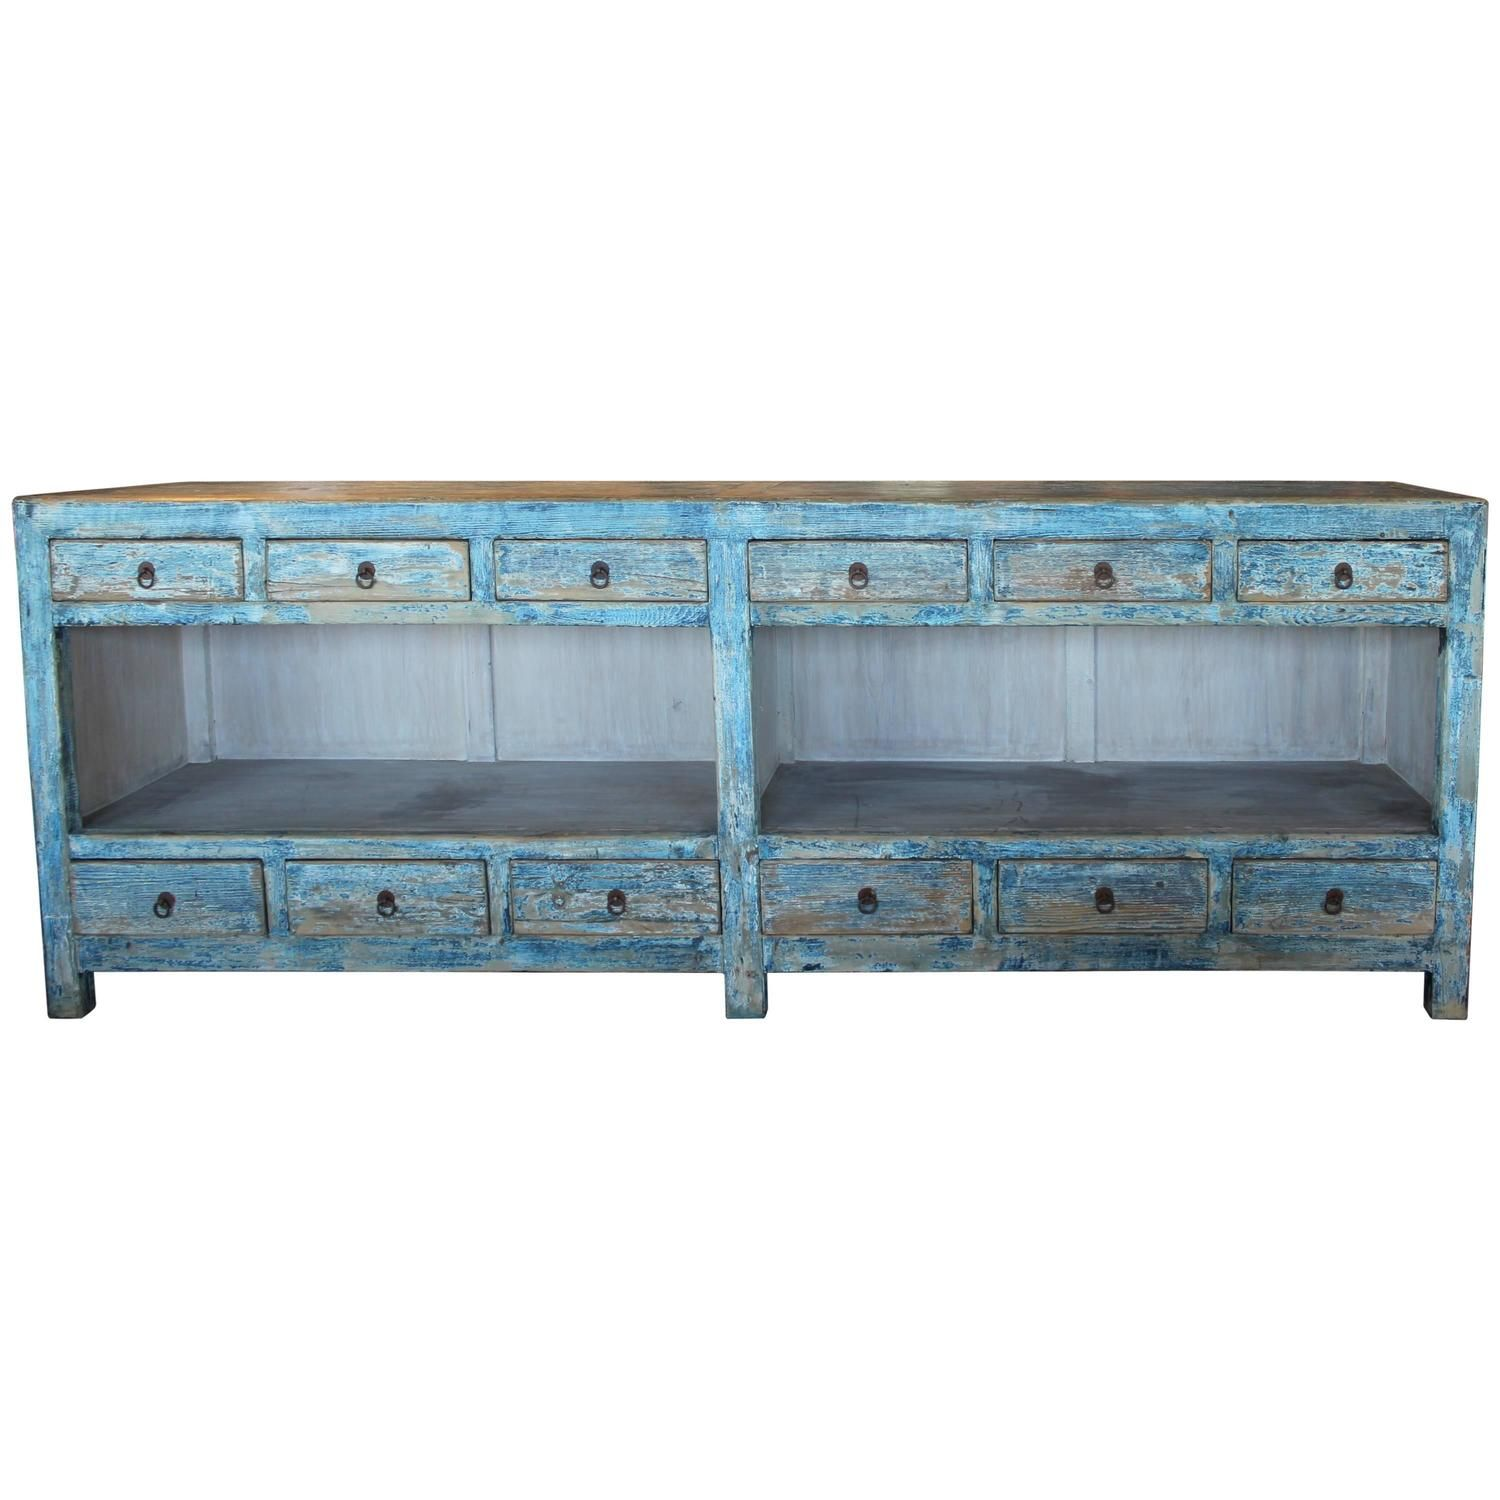 Antique Sea Blue 12 Drawer Open Sideboard Table